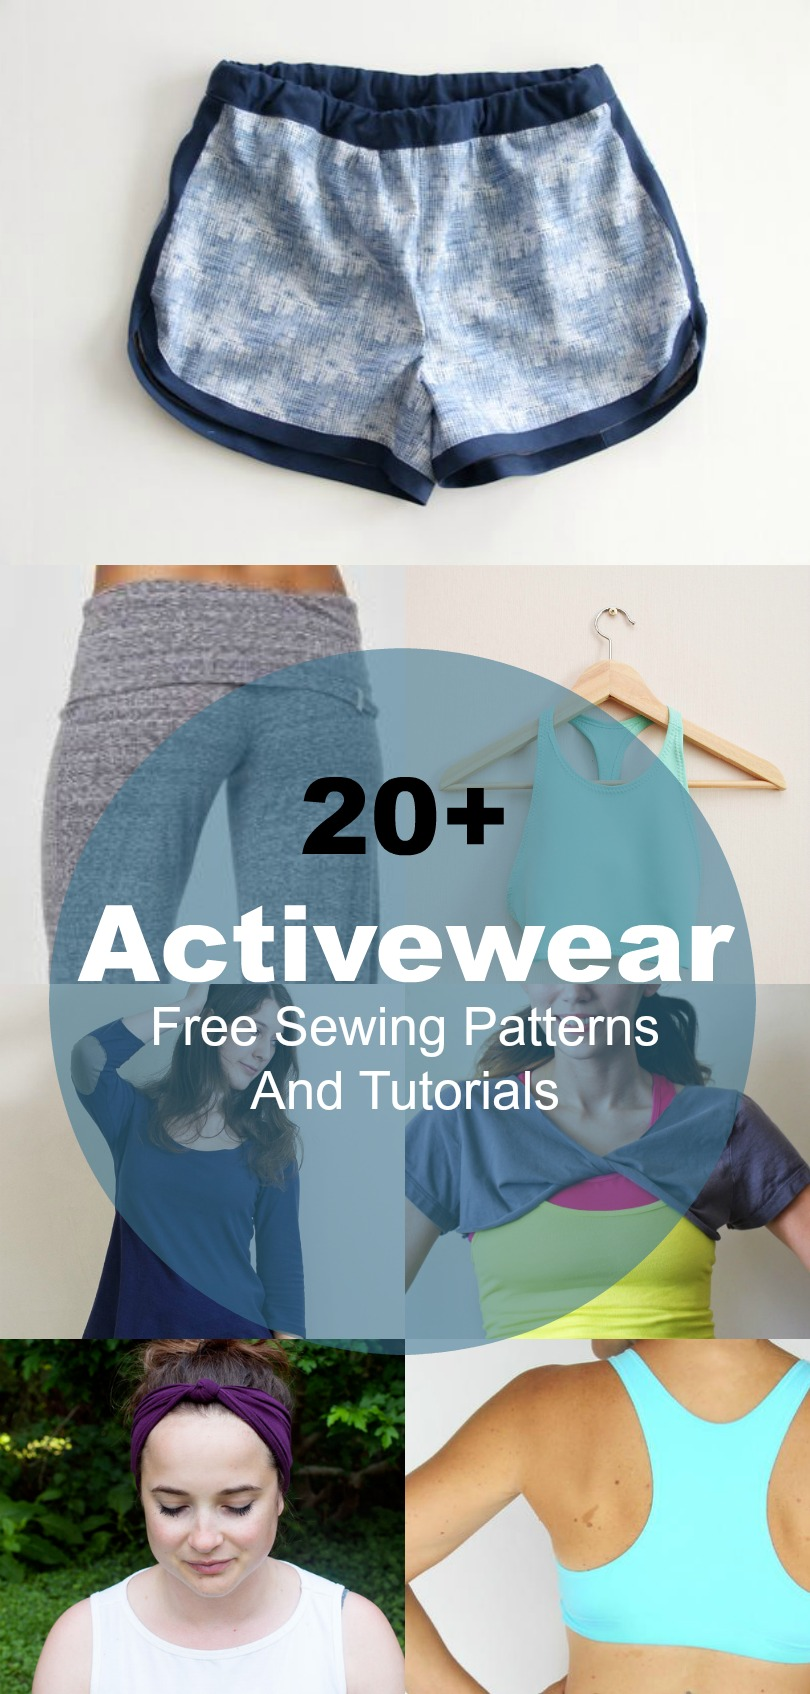 20 free sewing patterns for athletic wear on the cutting floor 20 free sewing patterns for athletic wear on the cutting floor printable pdf sewing patterns and tutorials for women jeuxipadfo Images